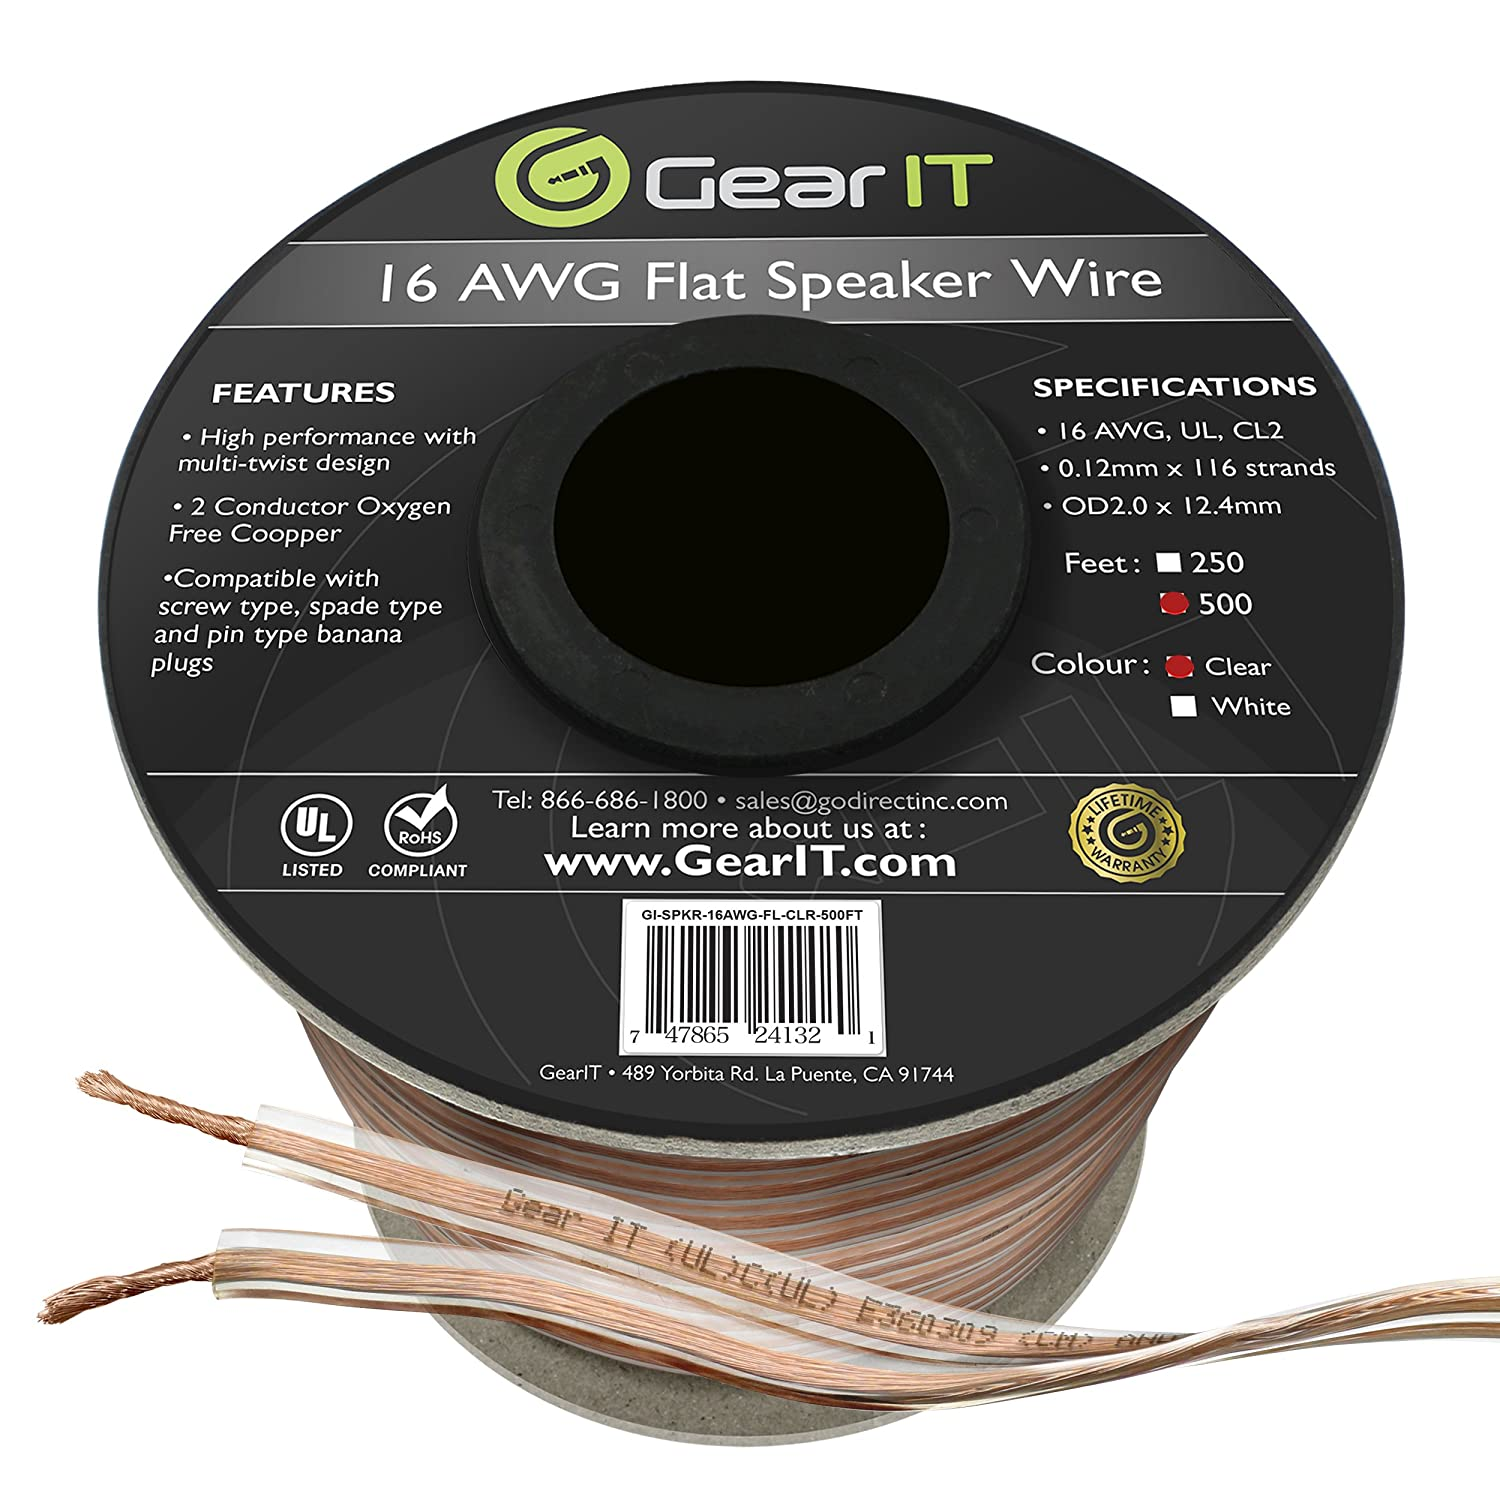 GearIT Elite Series 16AWG Flat Speaker Wire (500 Feet / 152 Meters) - Oxygen Free Copper (OFC) CL2 Rated in-Wall Installation for Home Theater, Car Audio, and Outdoor Use, Clear